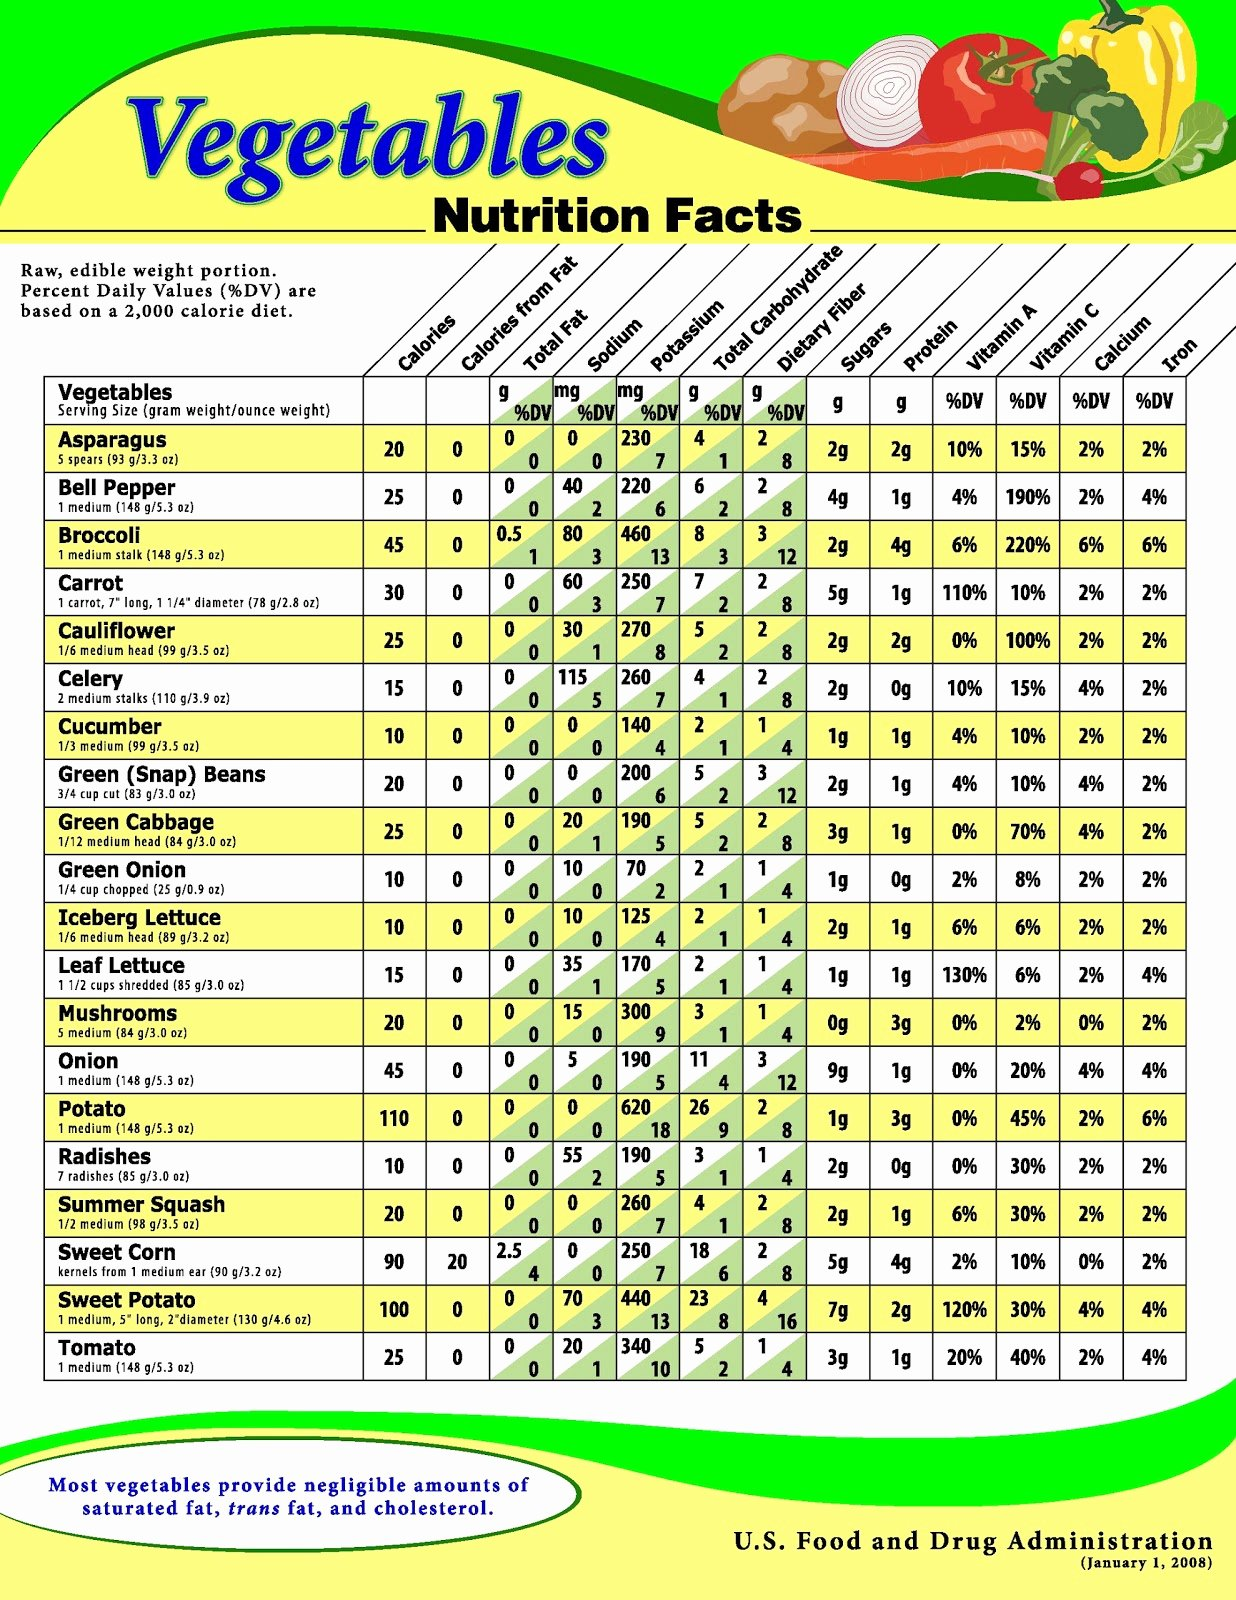 Food Calorie Chart Awesome Routine Life Measurements Ve Ables Nutrition's Fact Sheet